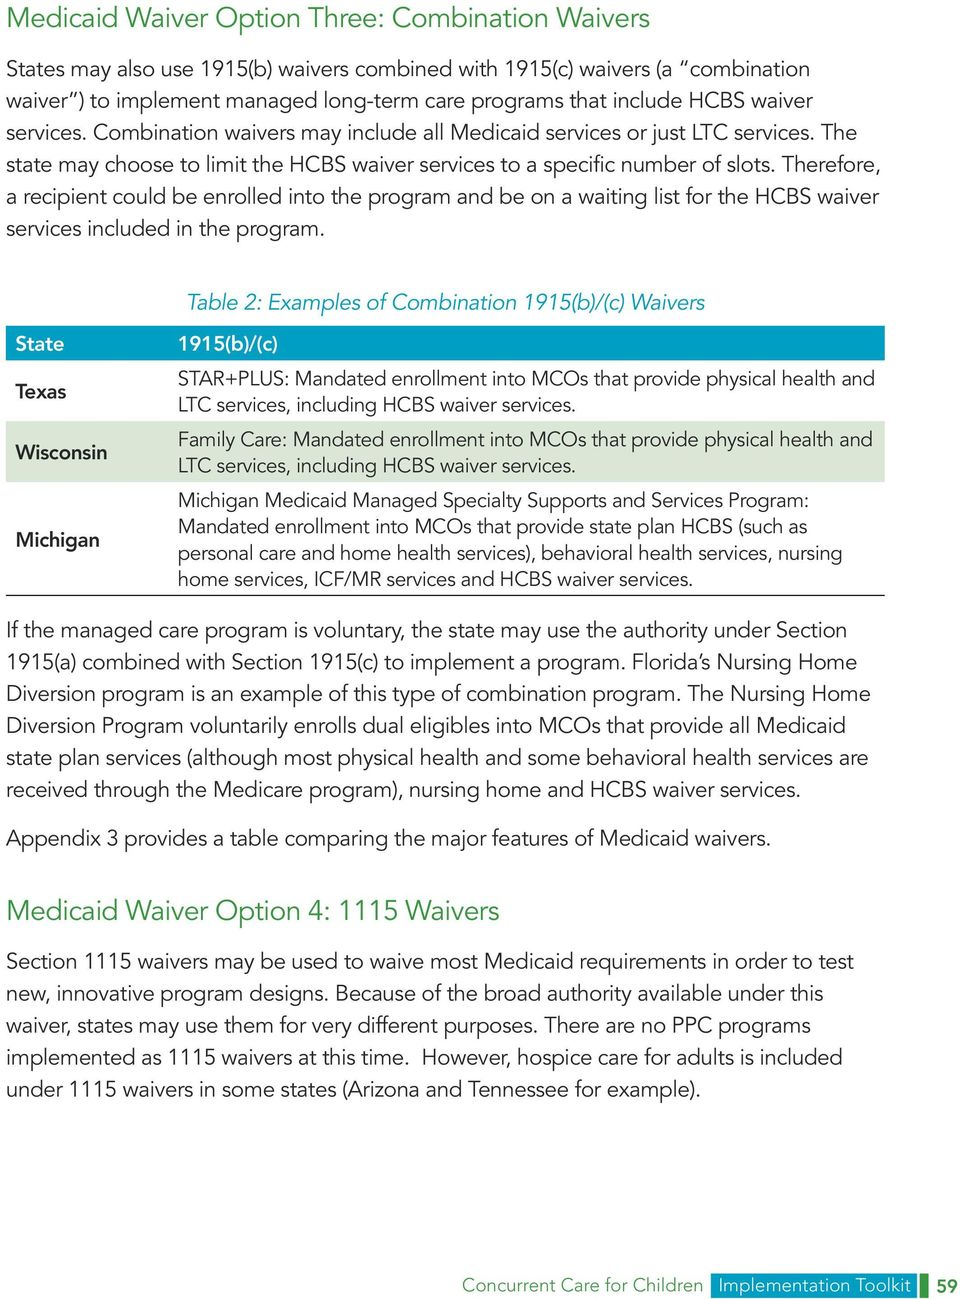 Appendix 4: SPA and Waiver Options to Enhance Concurrent Care